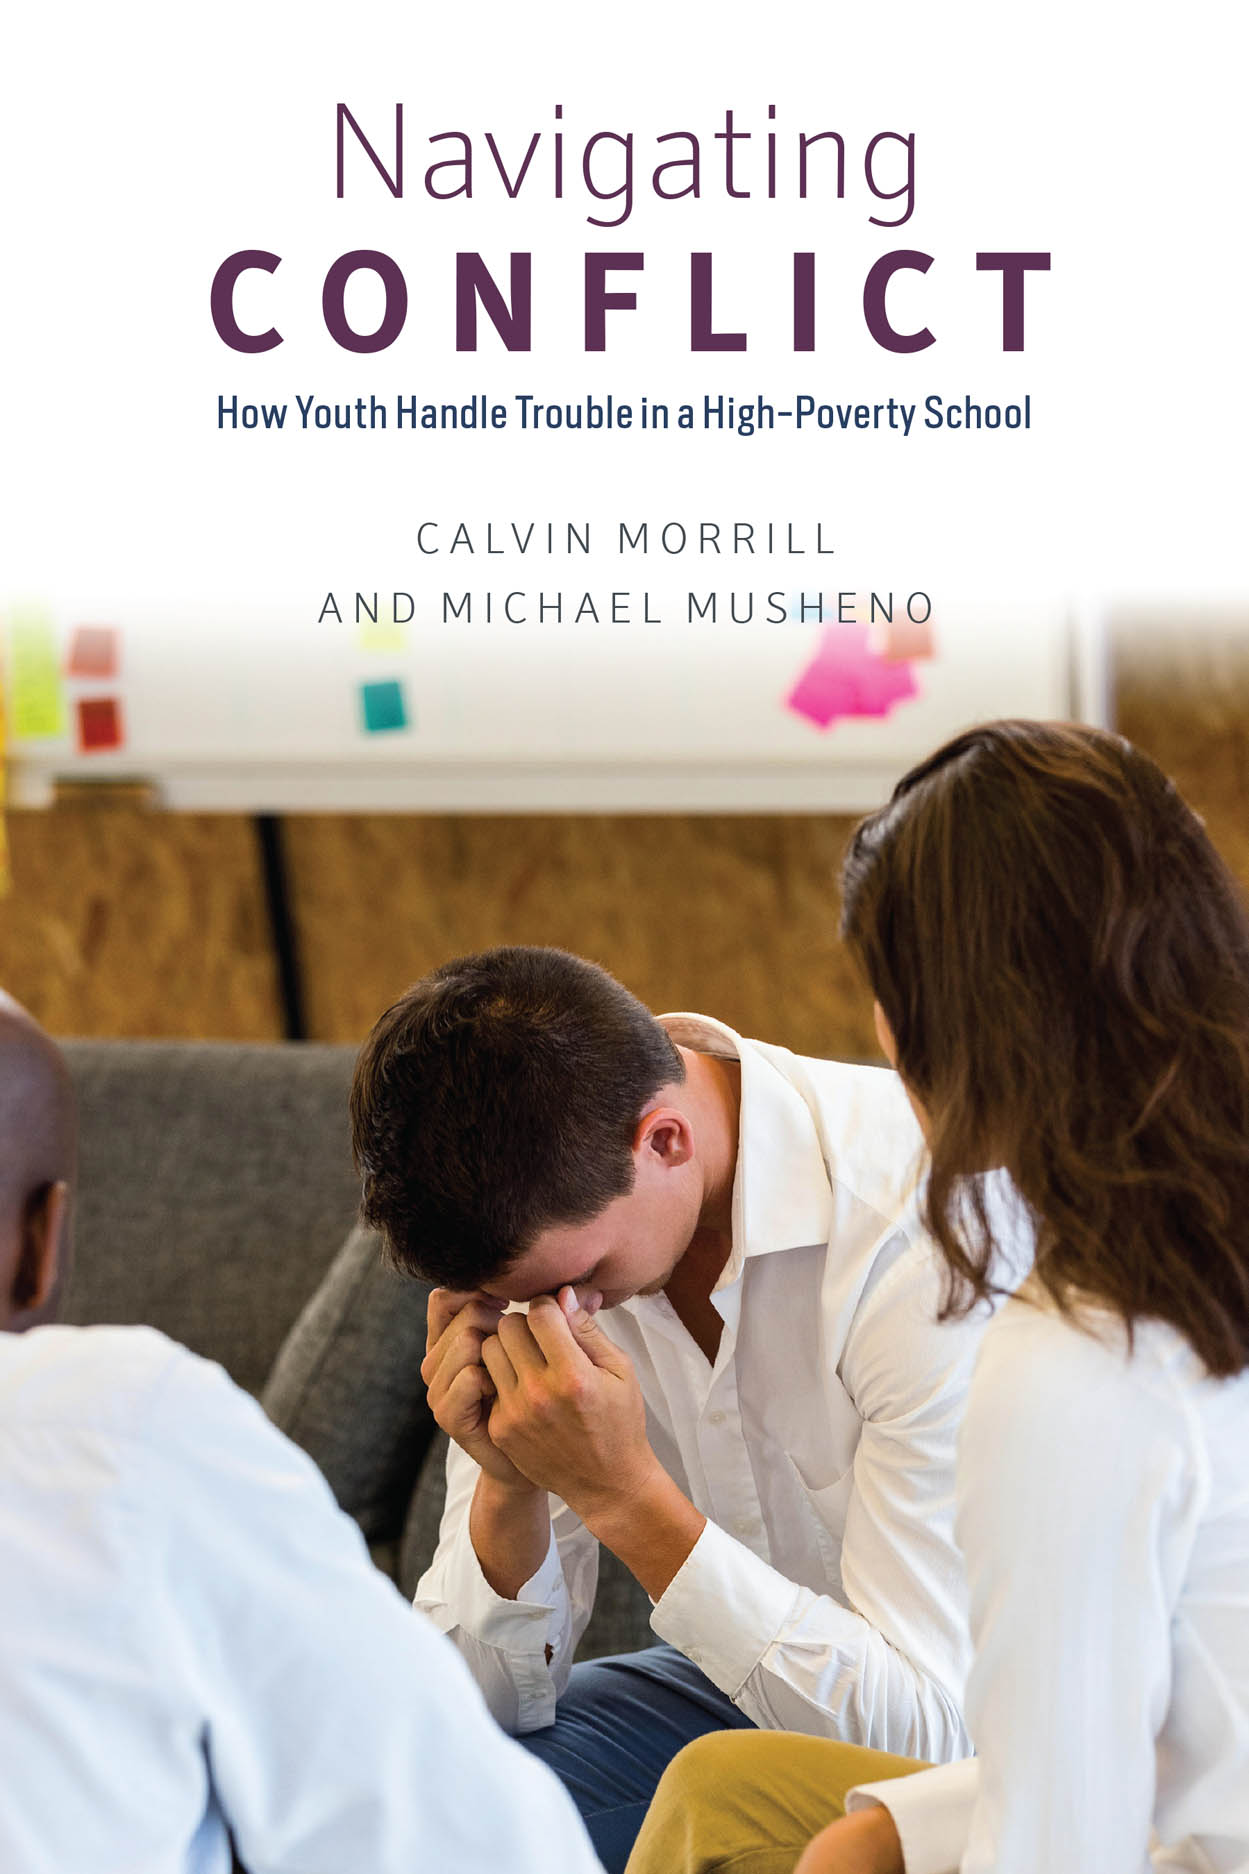 Navigating Conflict: How Youth Handle Trouble in a High-Poverty School